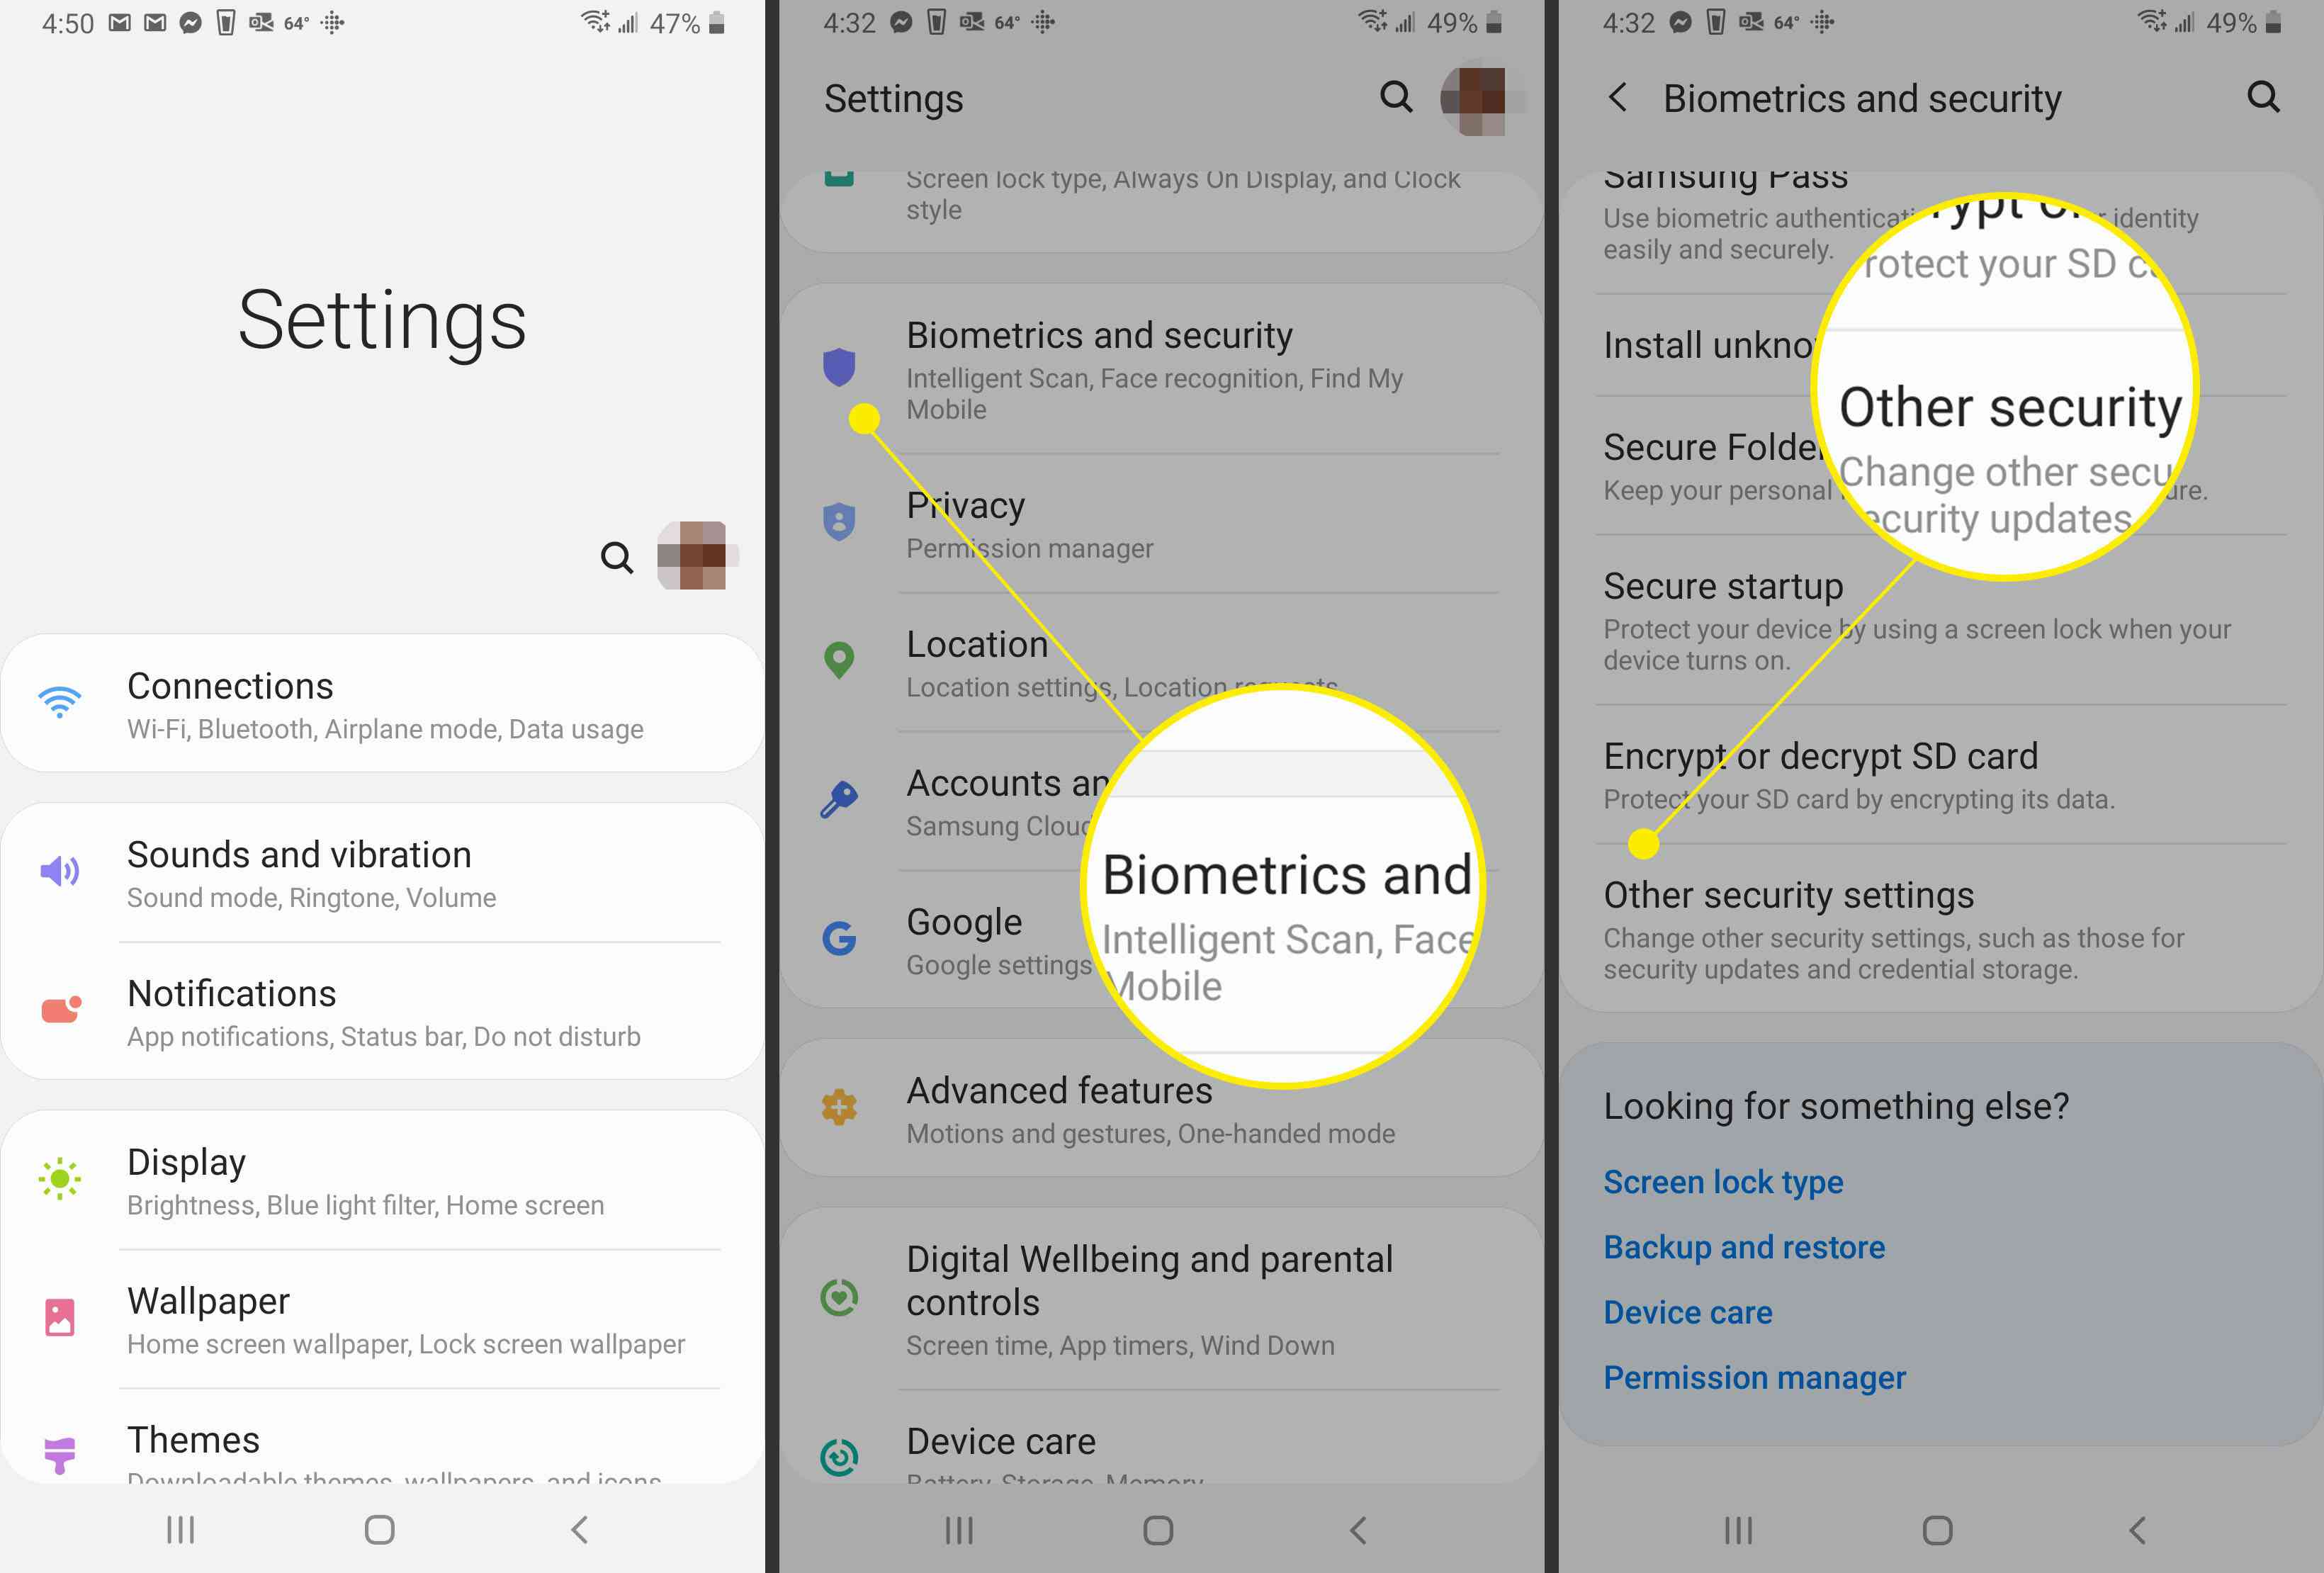 Navigating to other security settings in Android 10.0